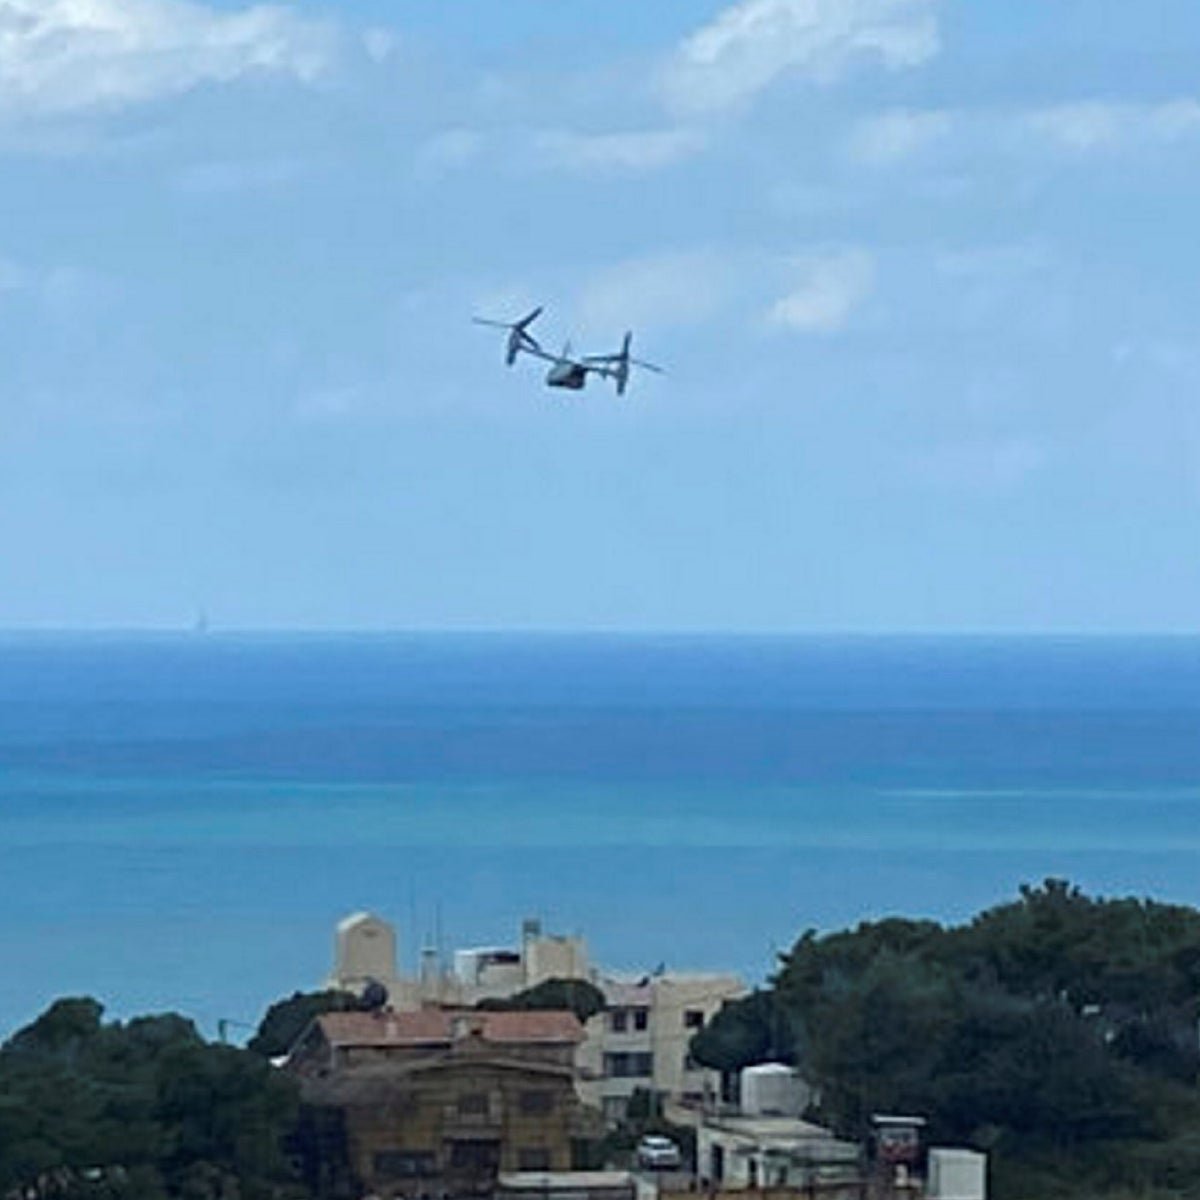 A U.S. Marine Osprey is seen taking off from the U.S. Embassy in Aukar, northeast of Beirut, Lebanon, onMarch 19, 2020.